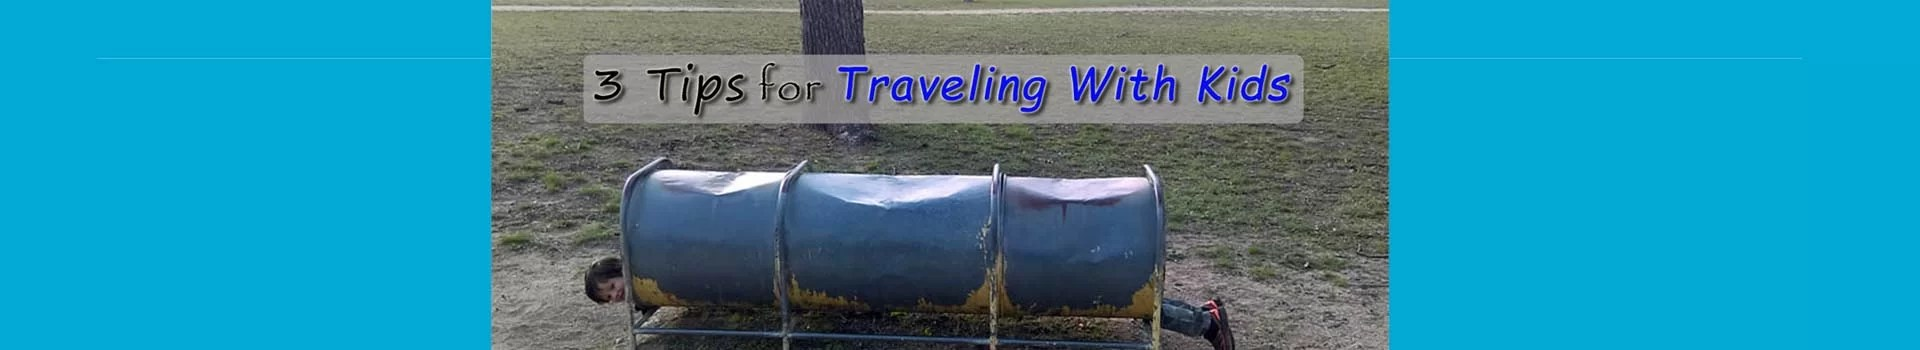 3 Tips for Traveling With Kids